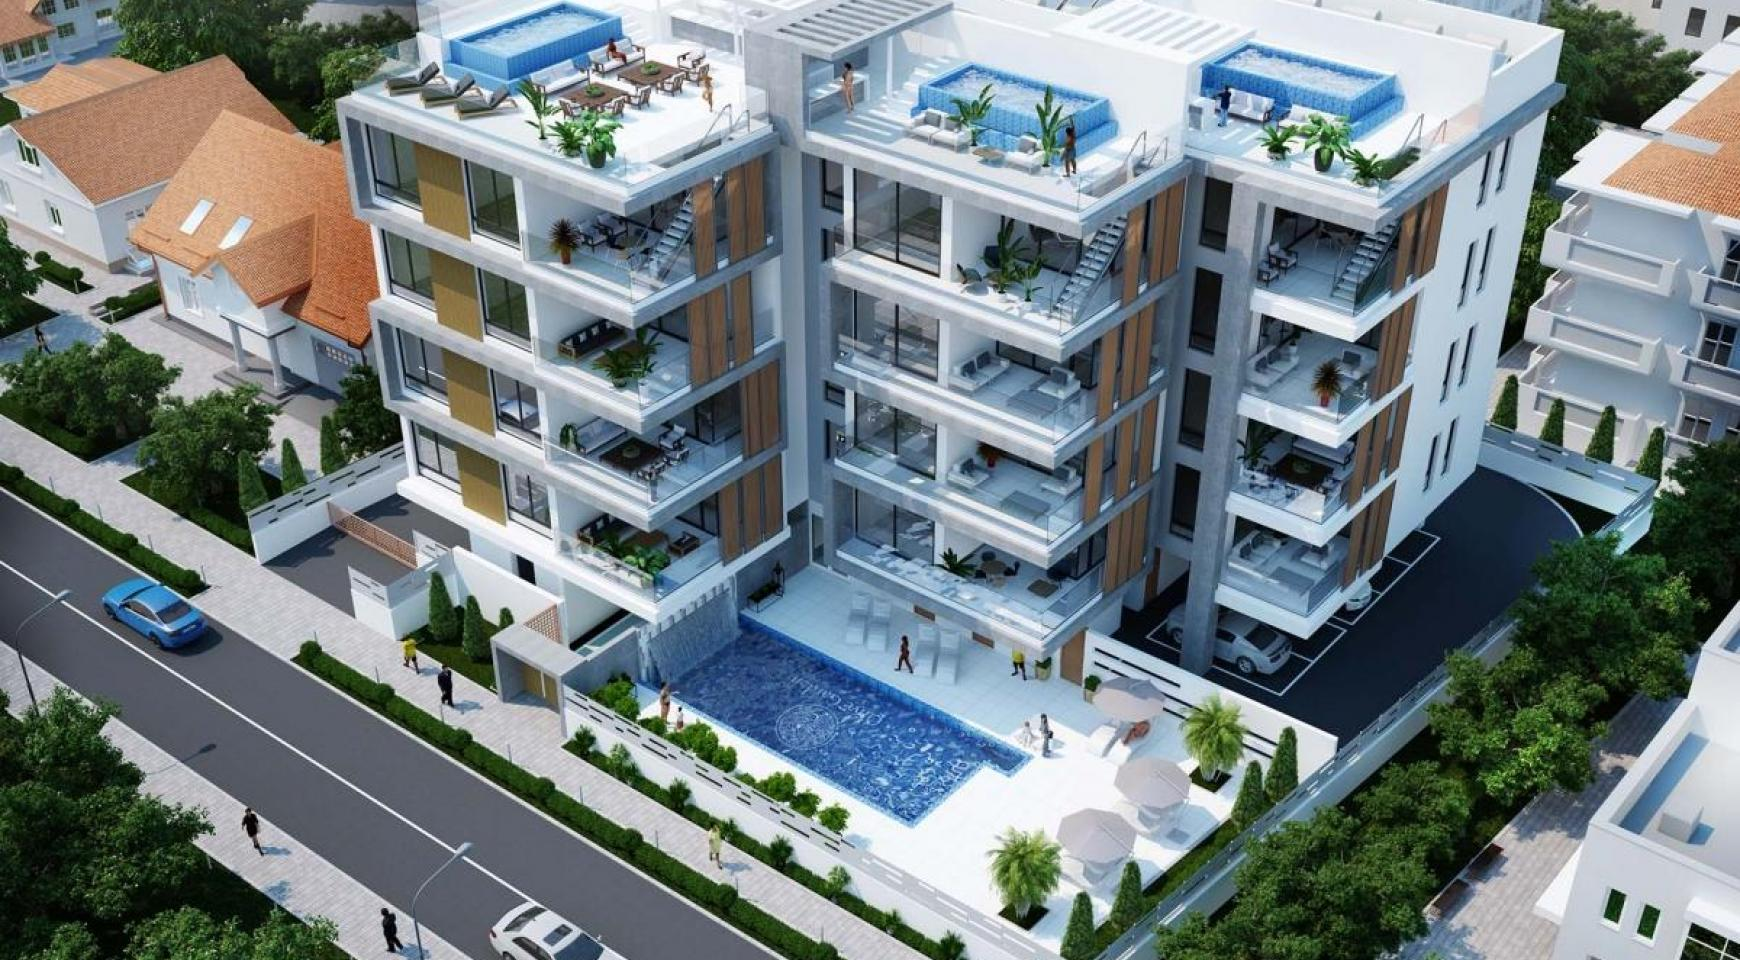 3 Bedroom Penthouse in a New Complex near the Sea - 1